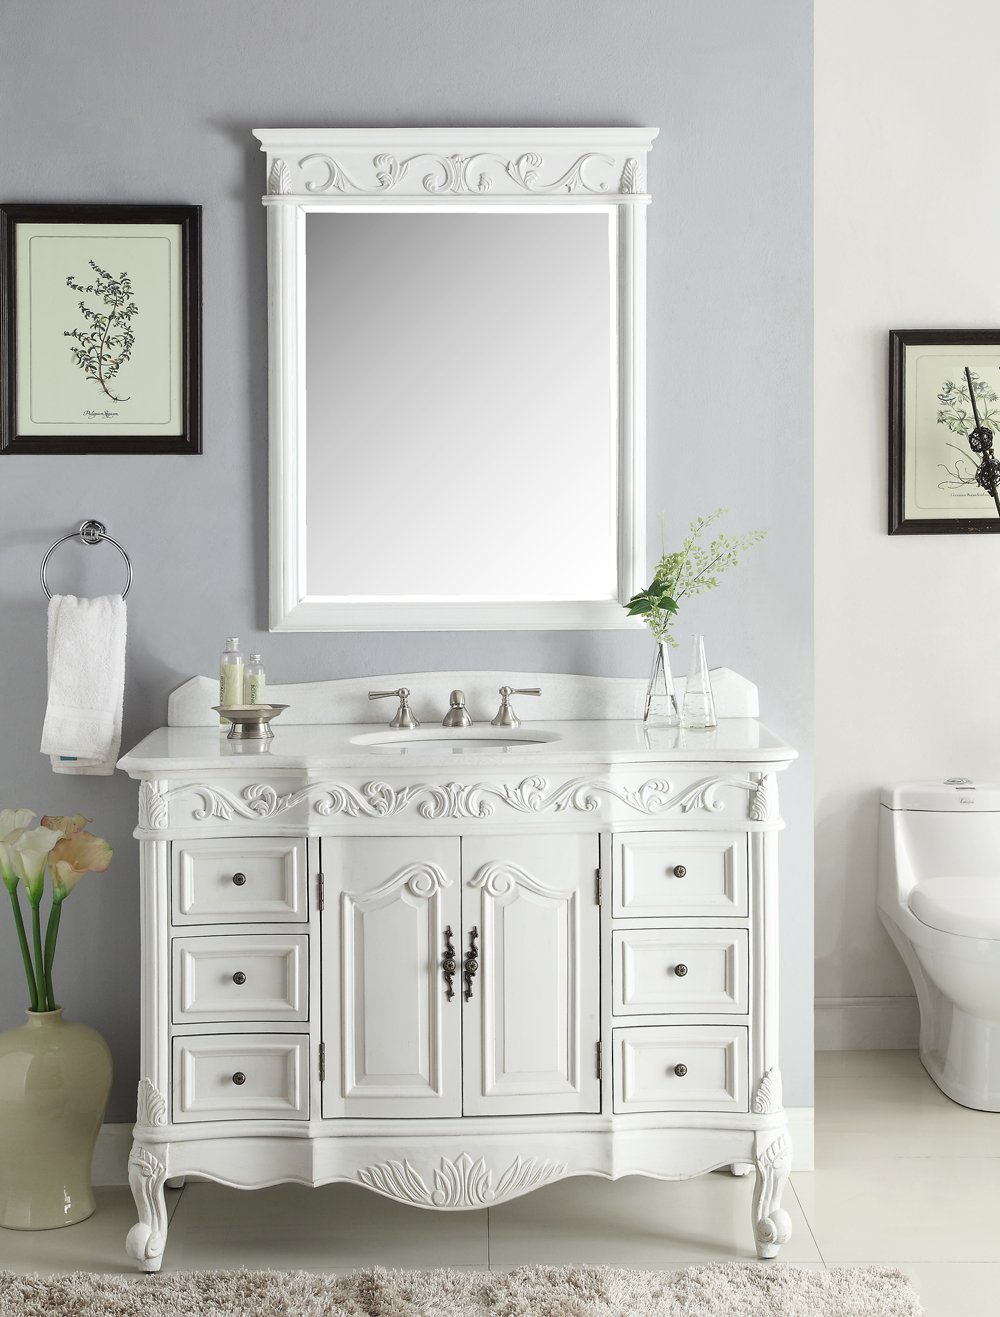 42  Antique White Beckham Bathroom Sink Vanity Cabinet Mirror SW 3882W AW Amazon Com